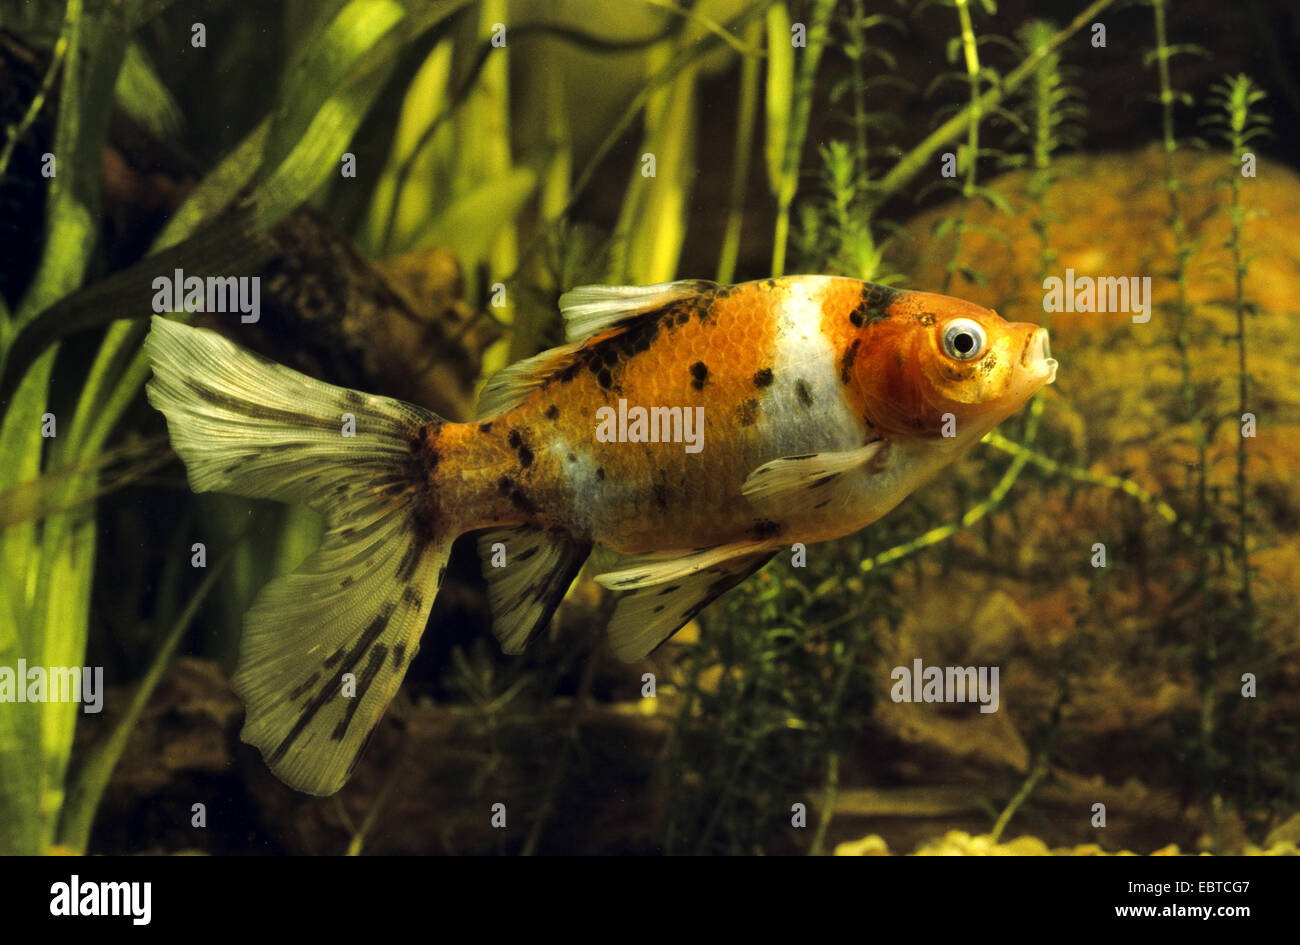 Shubunkin goldfish (Carassius auratus), swimming among waterplants Stock Photo